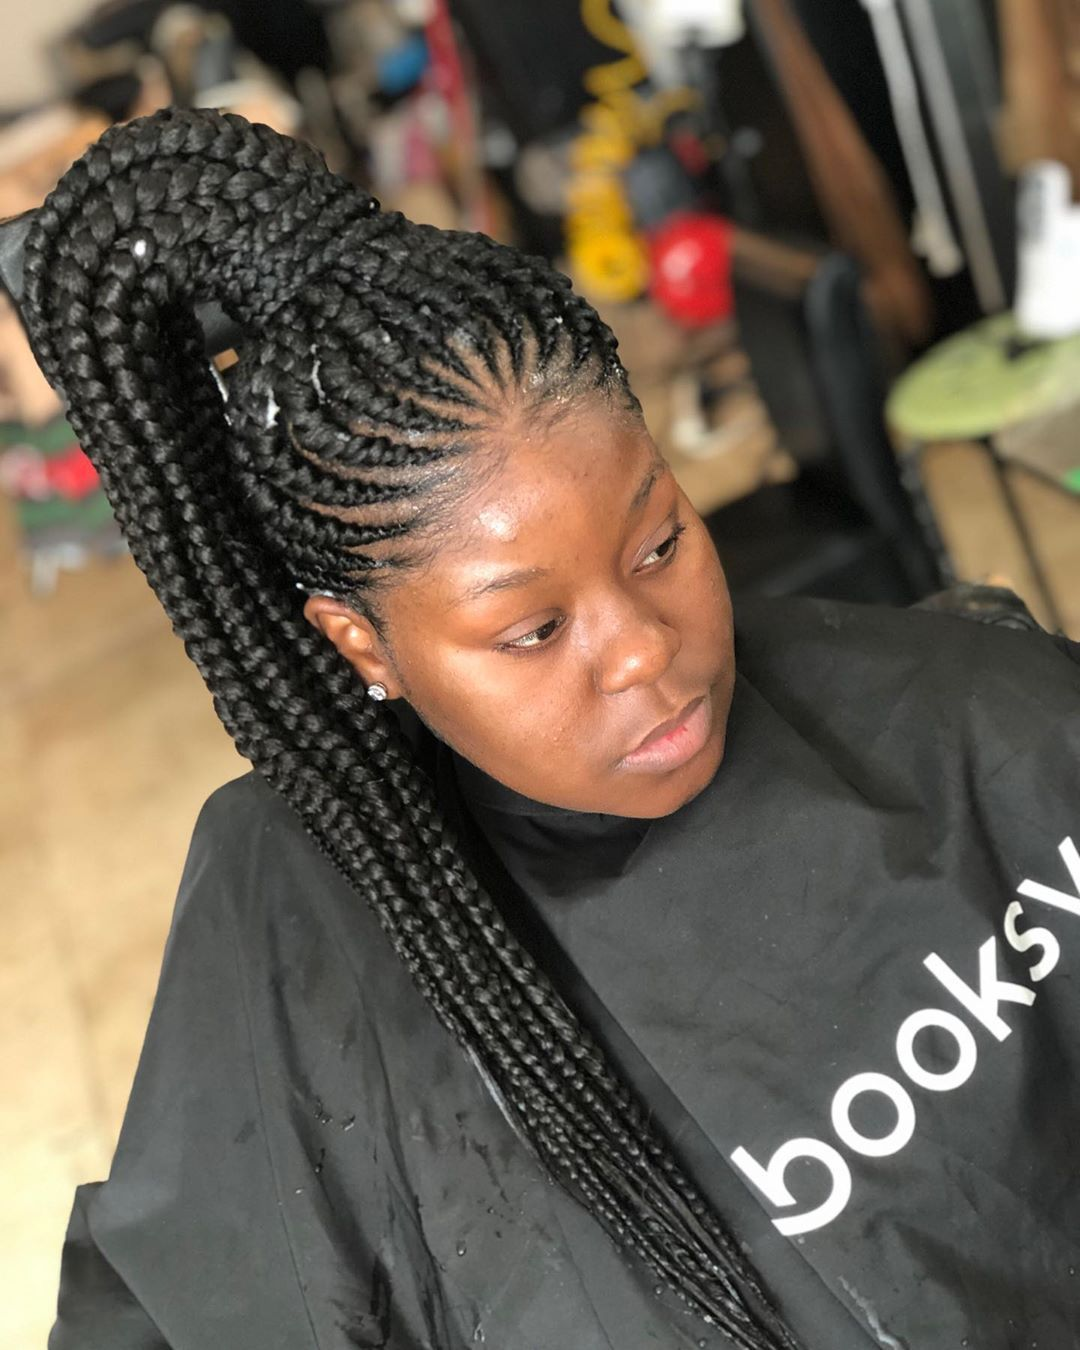 44+ Braids hairstyles 2020 pictures trends